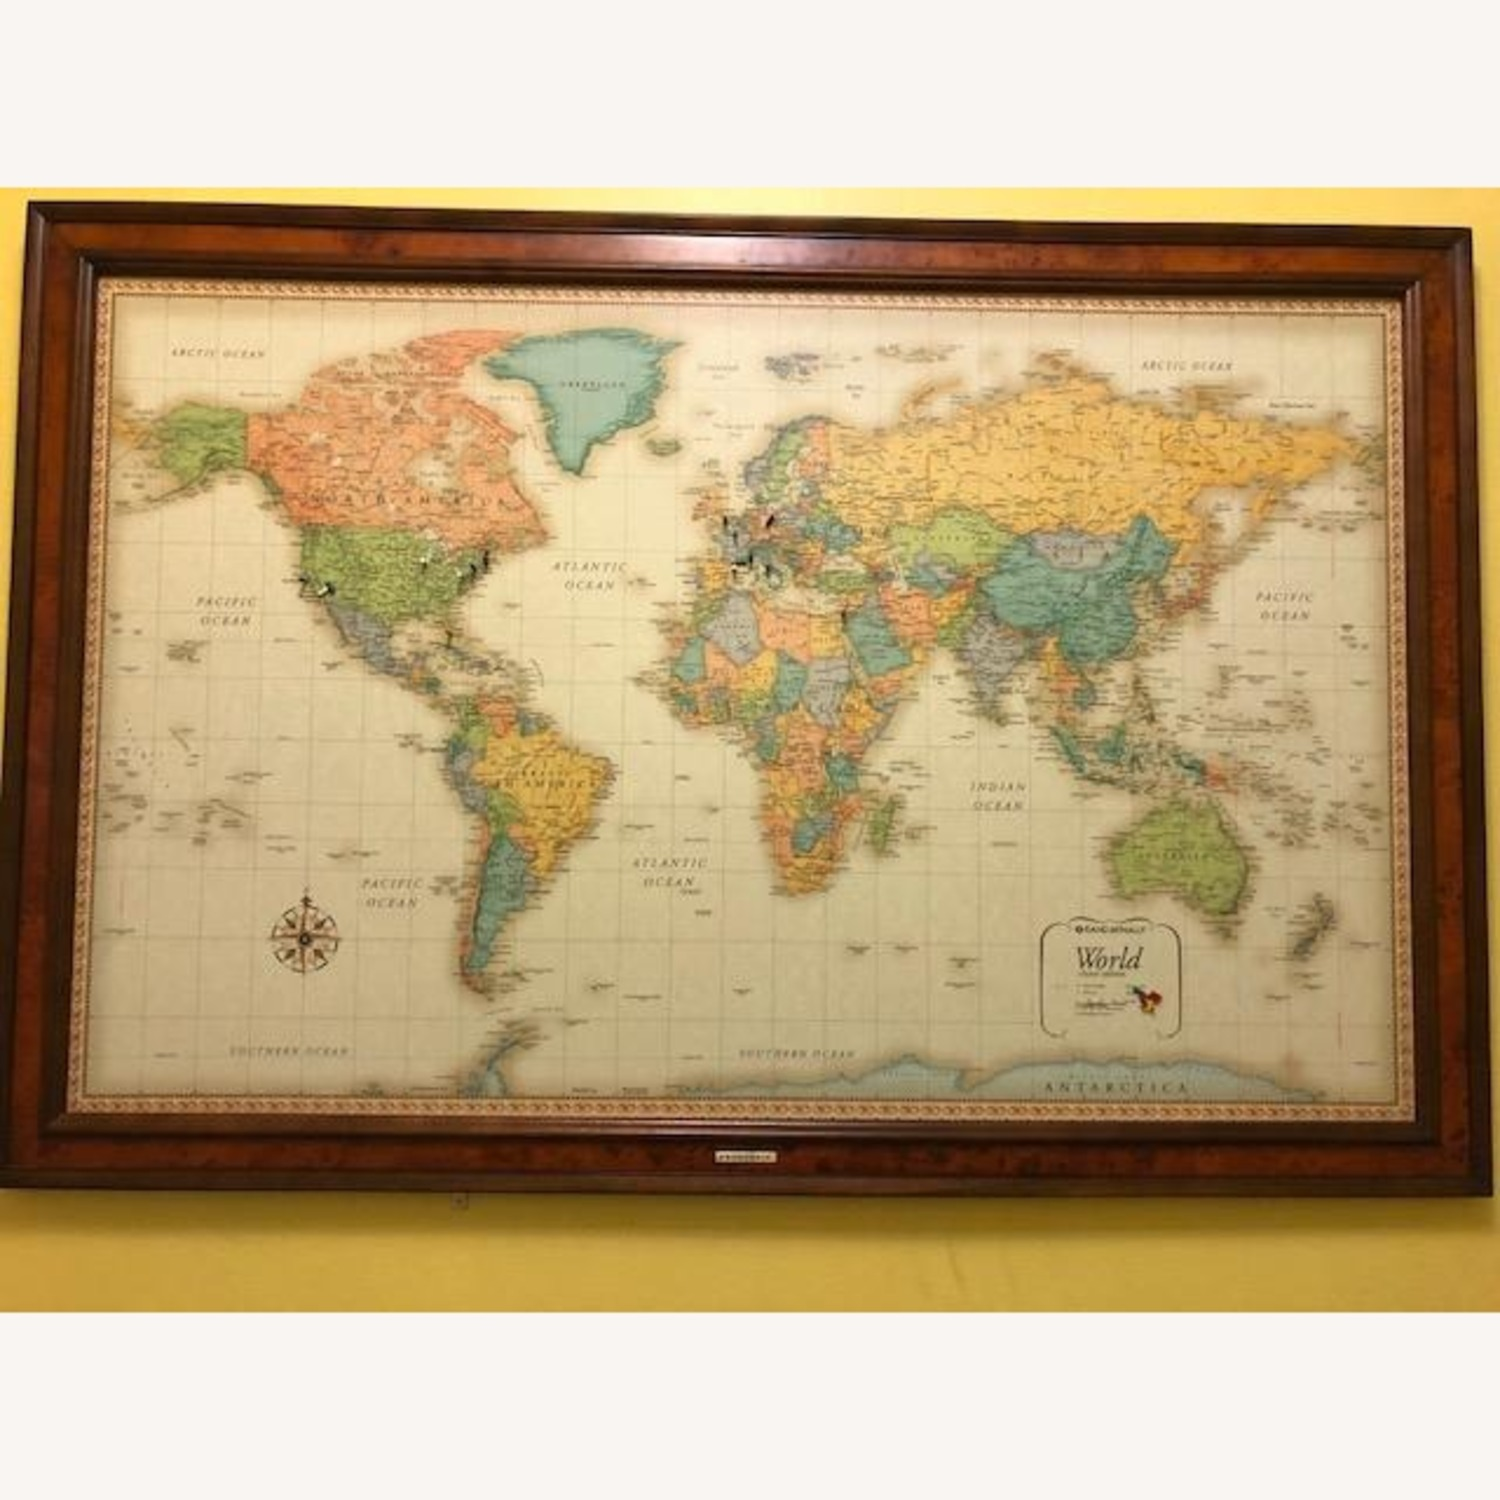 Frontgate Antique World Map - image-5